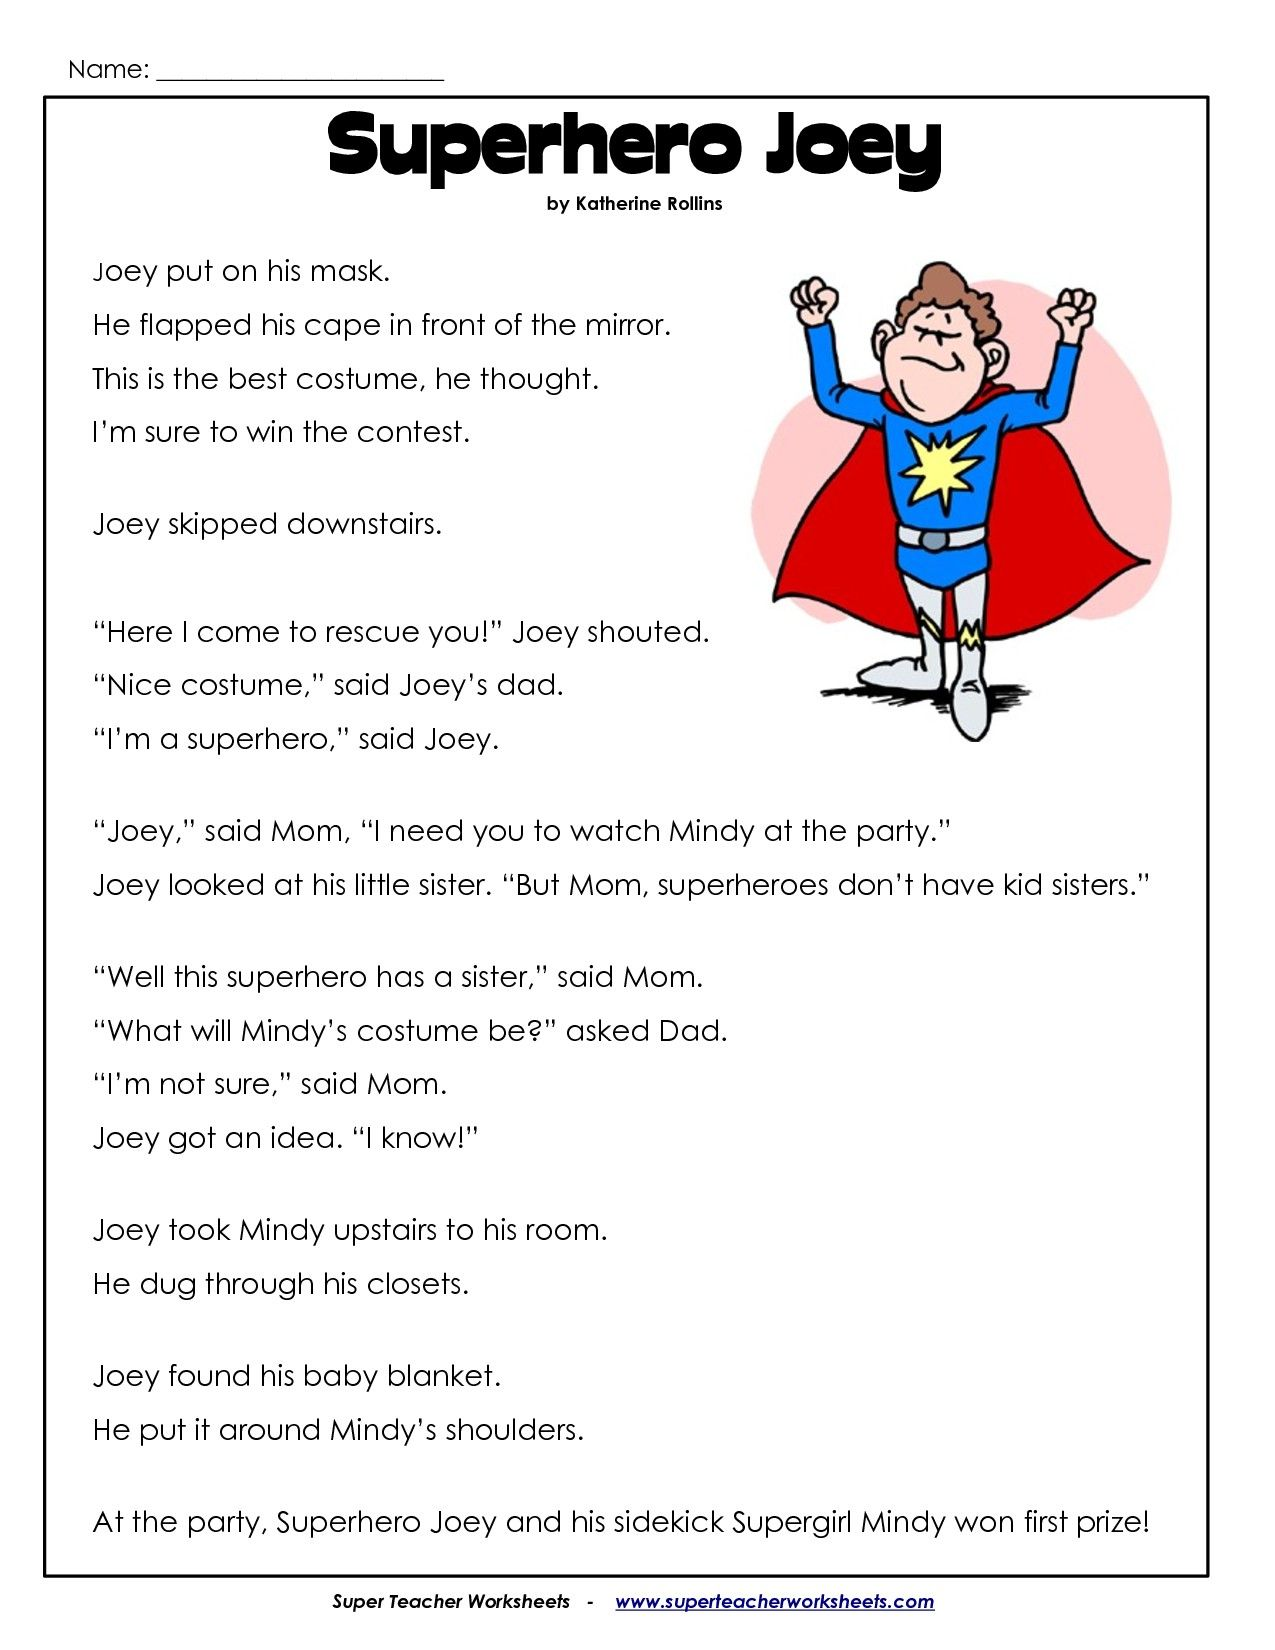 Worksheets Printable Reading Comprehension Worksheets For 2nd Grade 2nd grade reading comprehension worksheets pdf projects to try comprehension